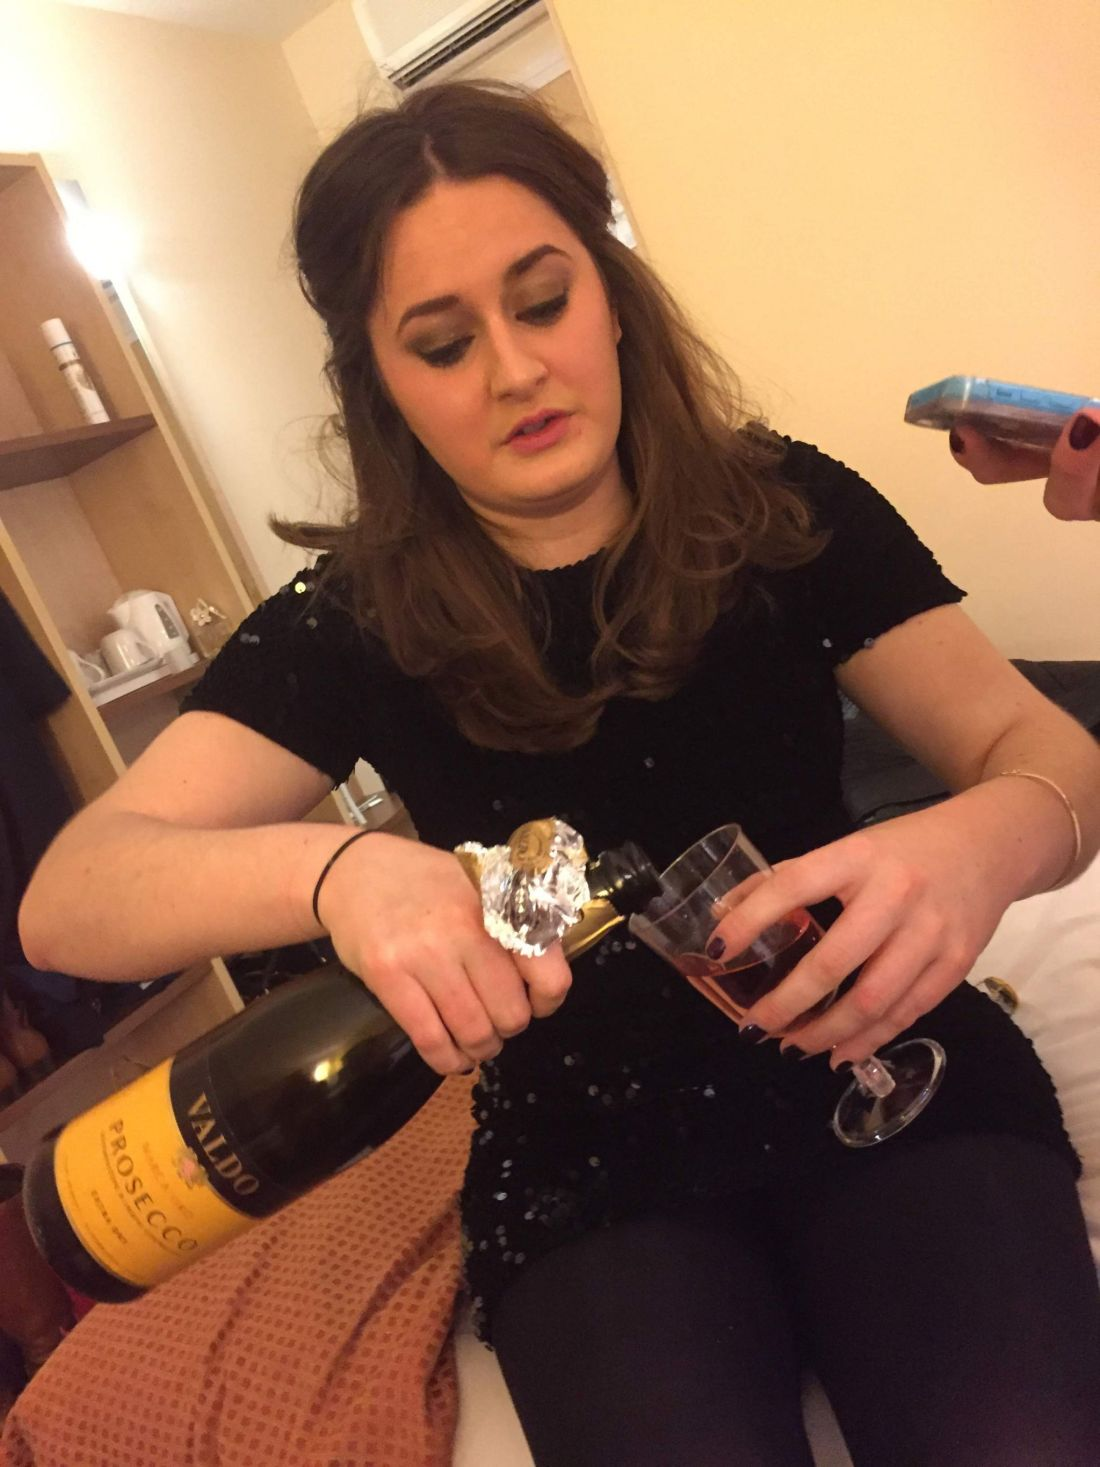 Pouring prosecco for New Year's Eve in Cheltenham